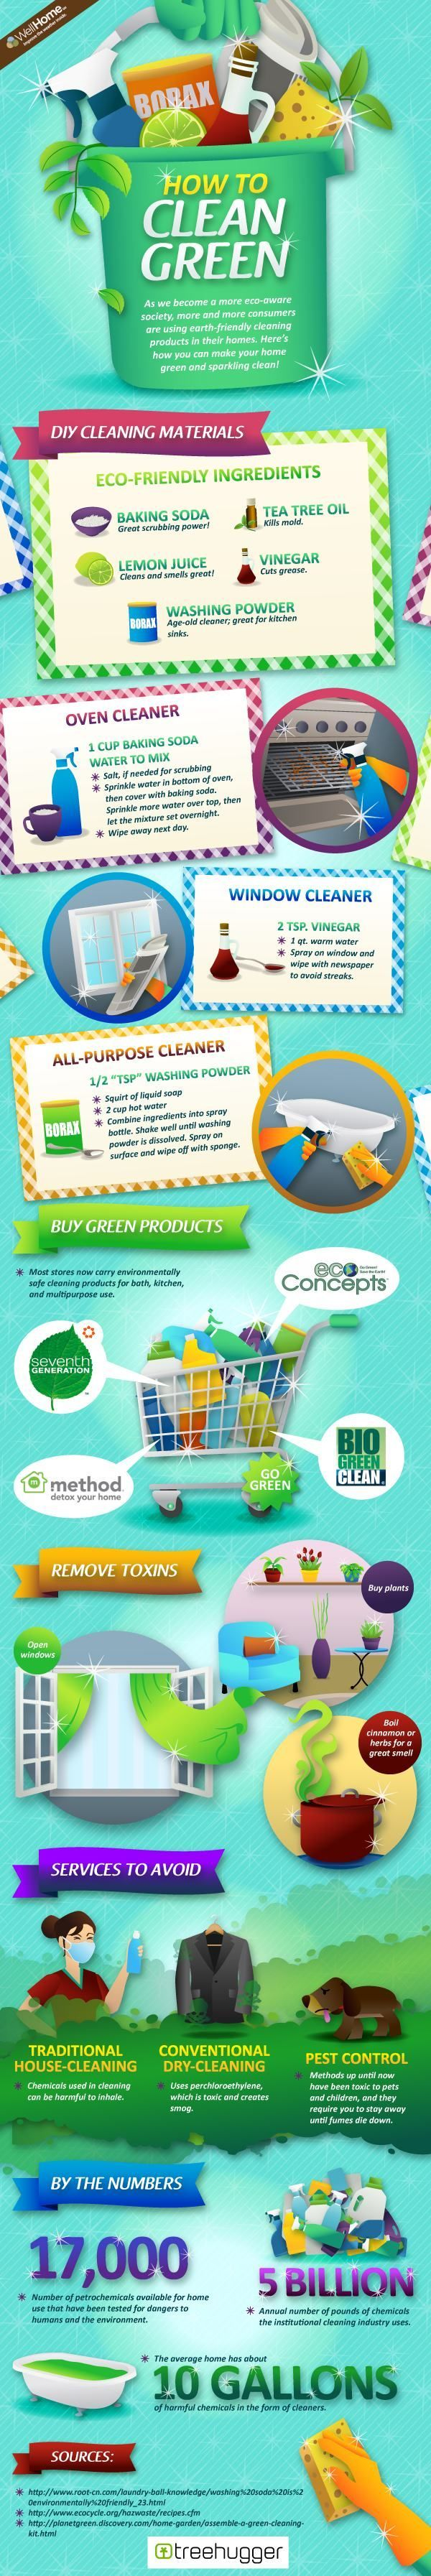 14 best Green Cleaning images on Pinterest | Households, Cleaning ...